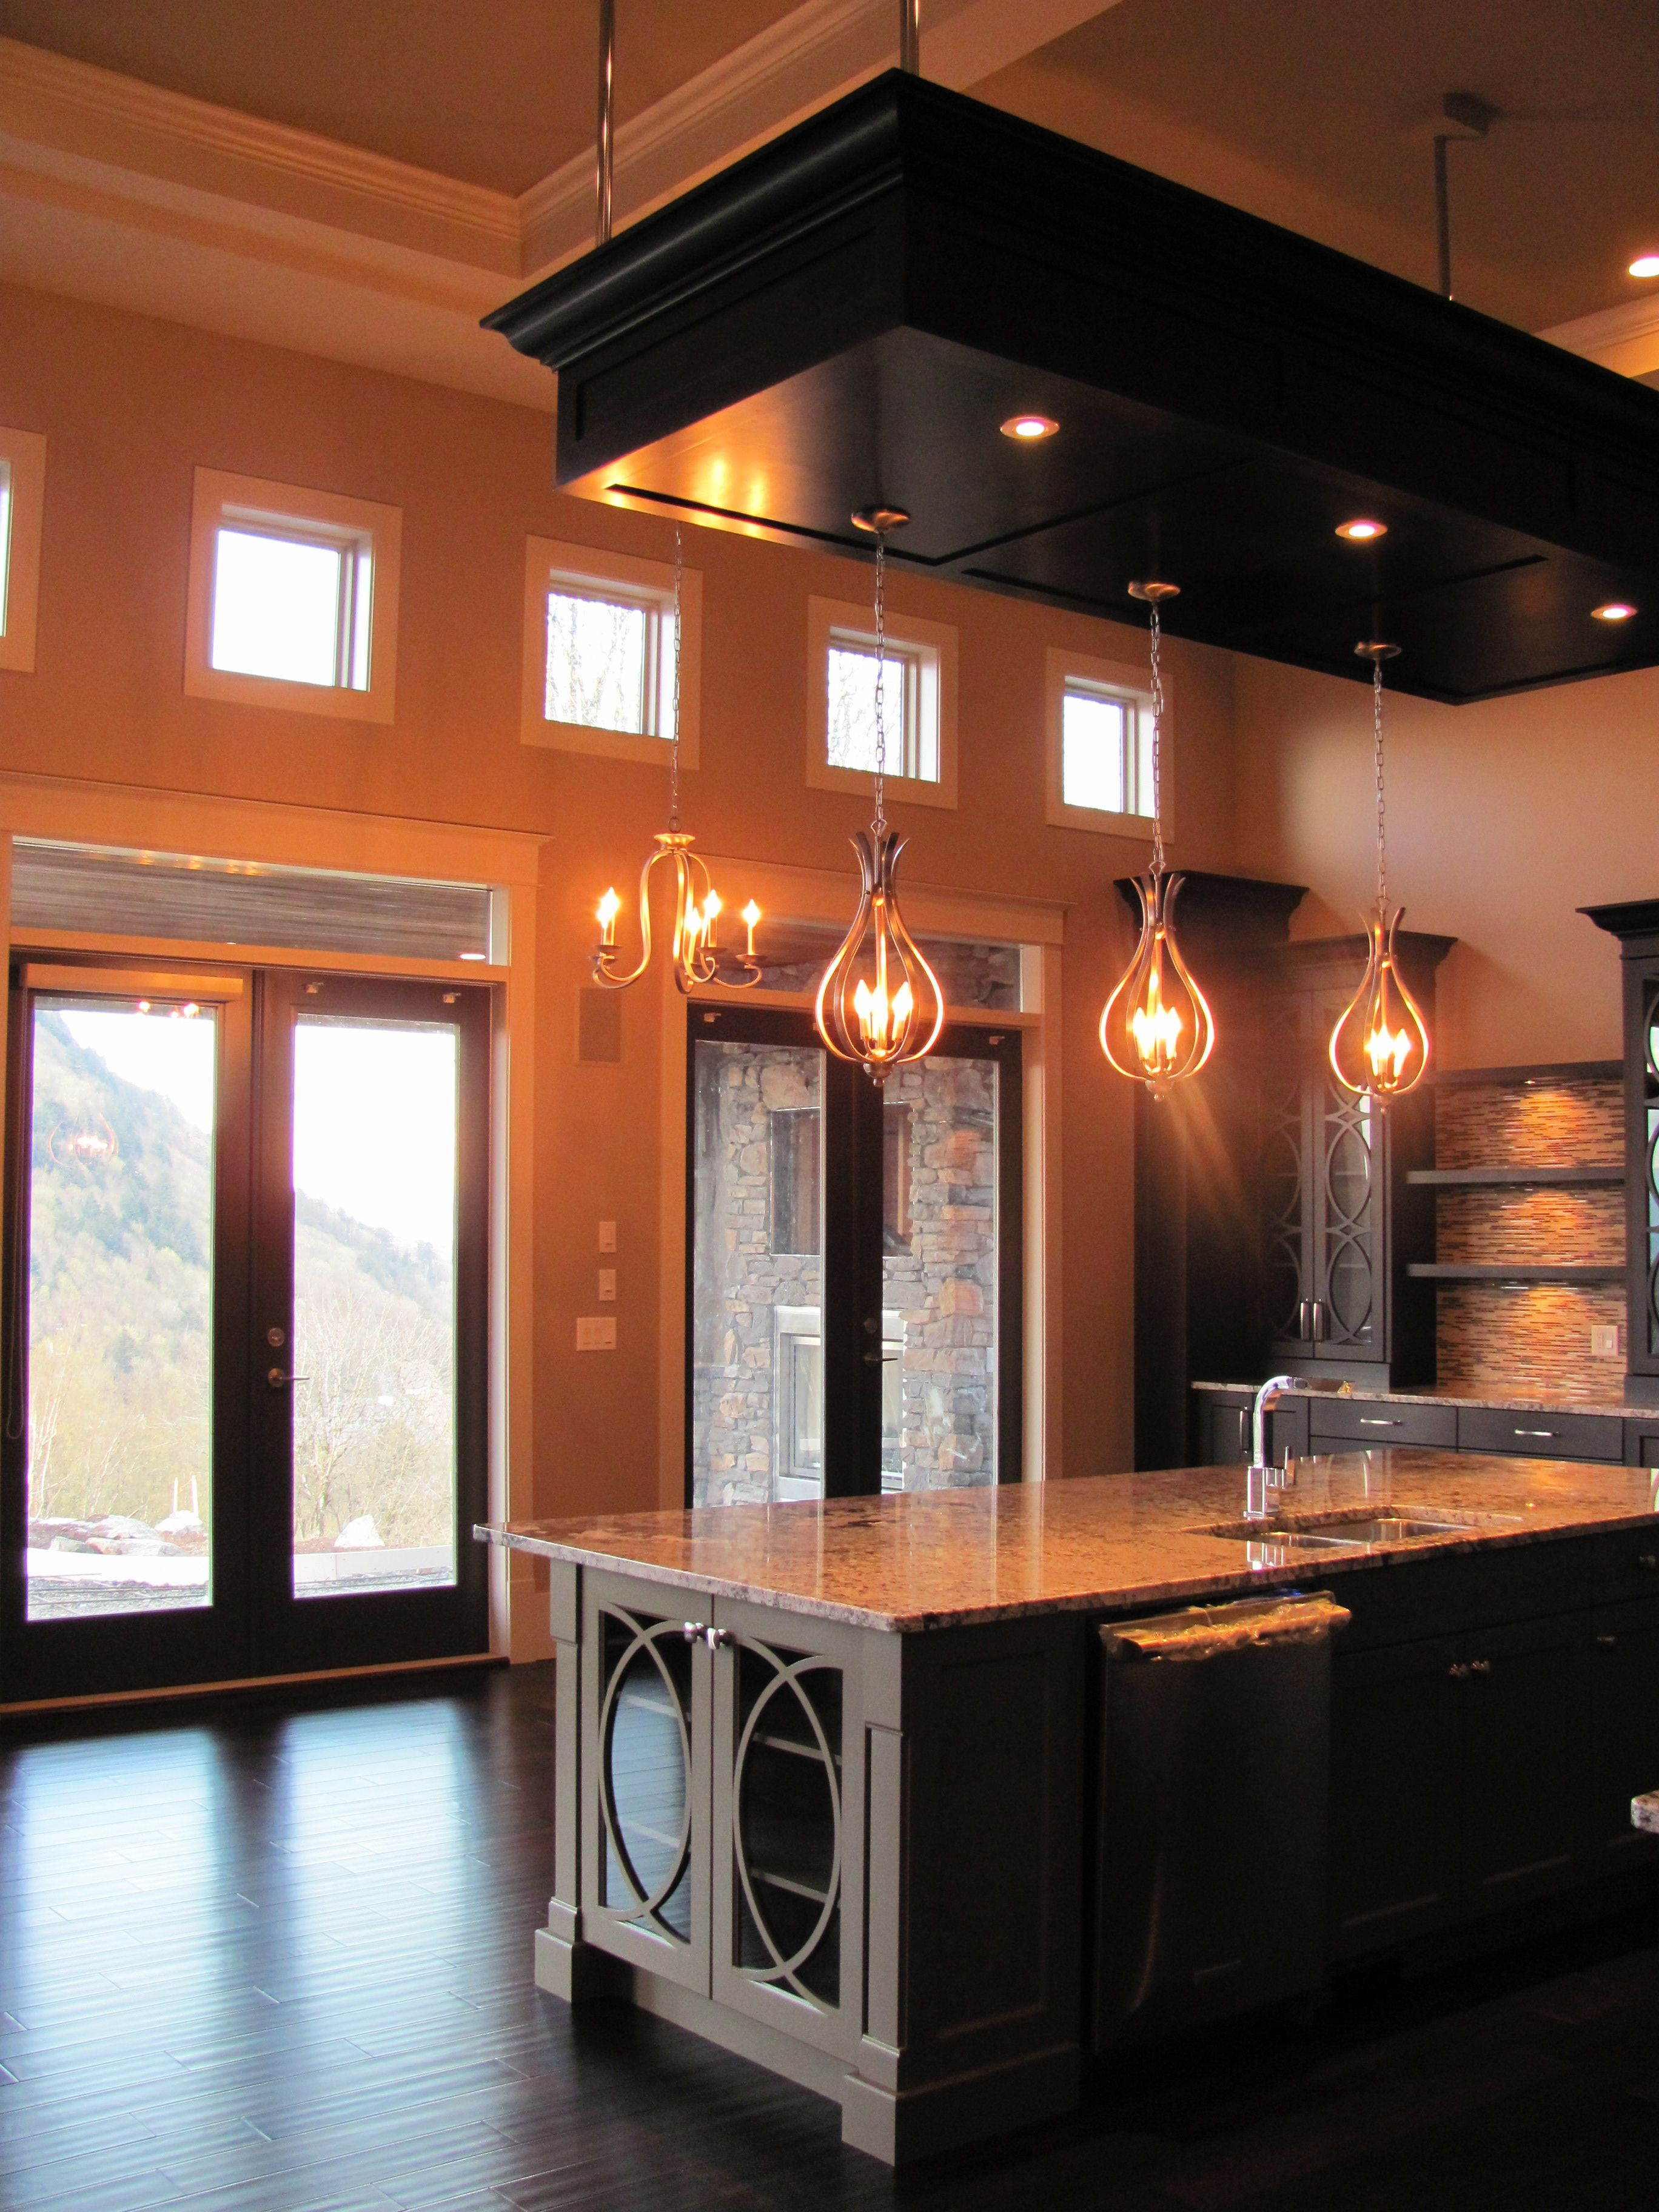 Gorgeous Kitchen With High Ceilings And Suspended Ceiling Over Island Kitchen Ceiling Design Ceiling Decor Kitchen Ceiling Drop lighting for kitchen